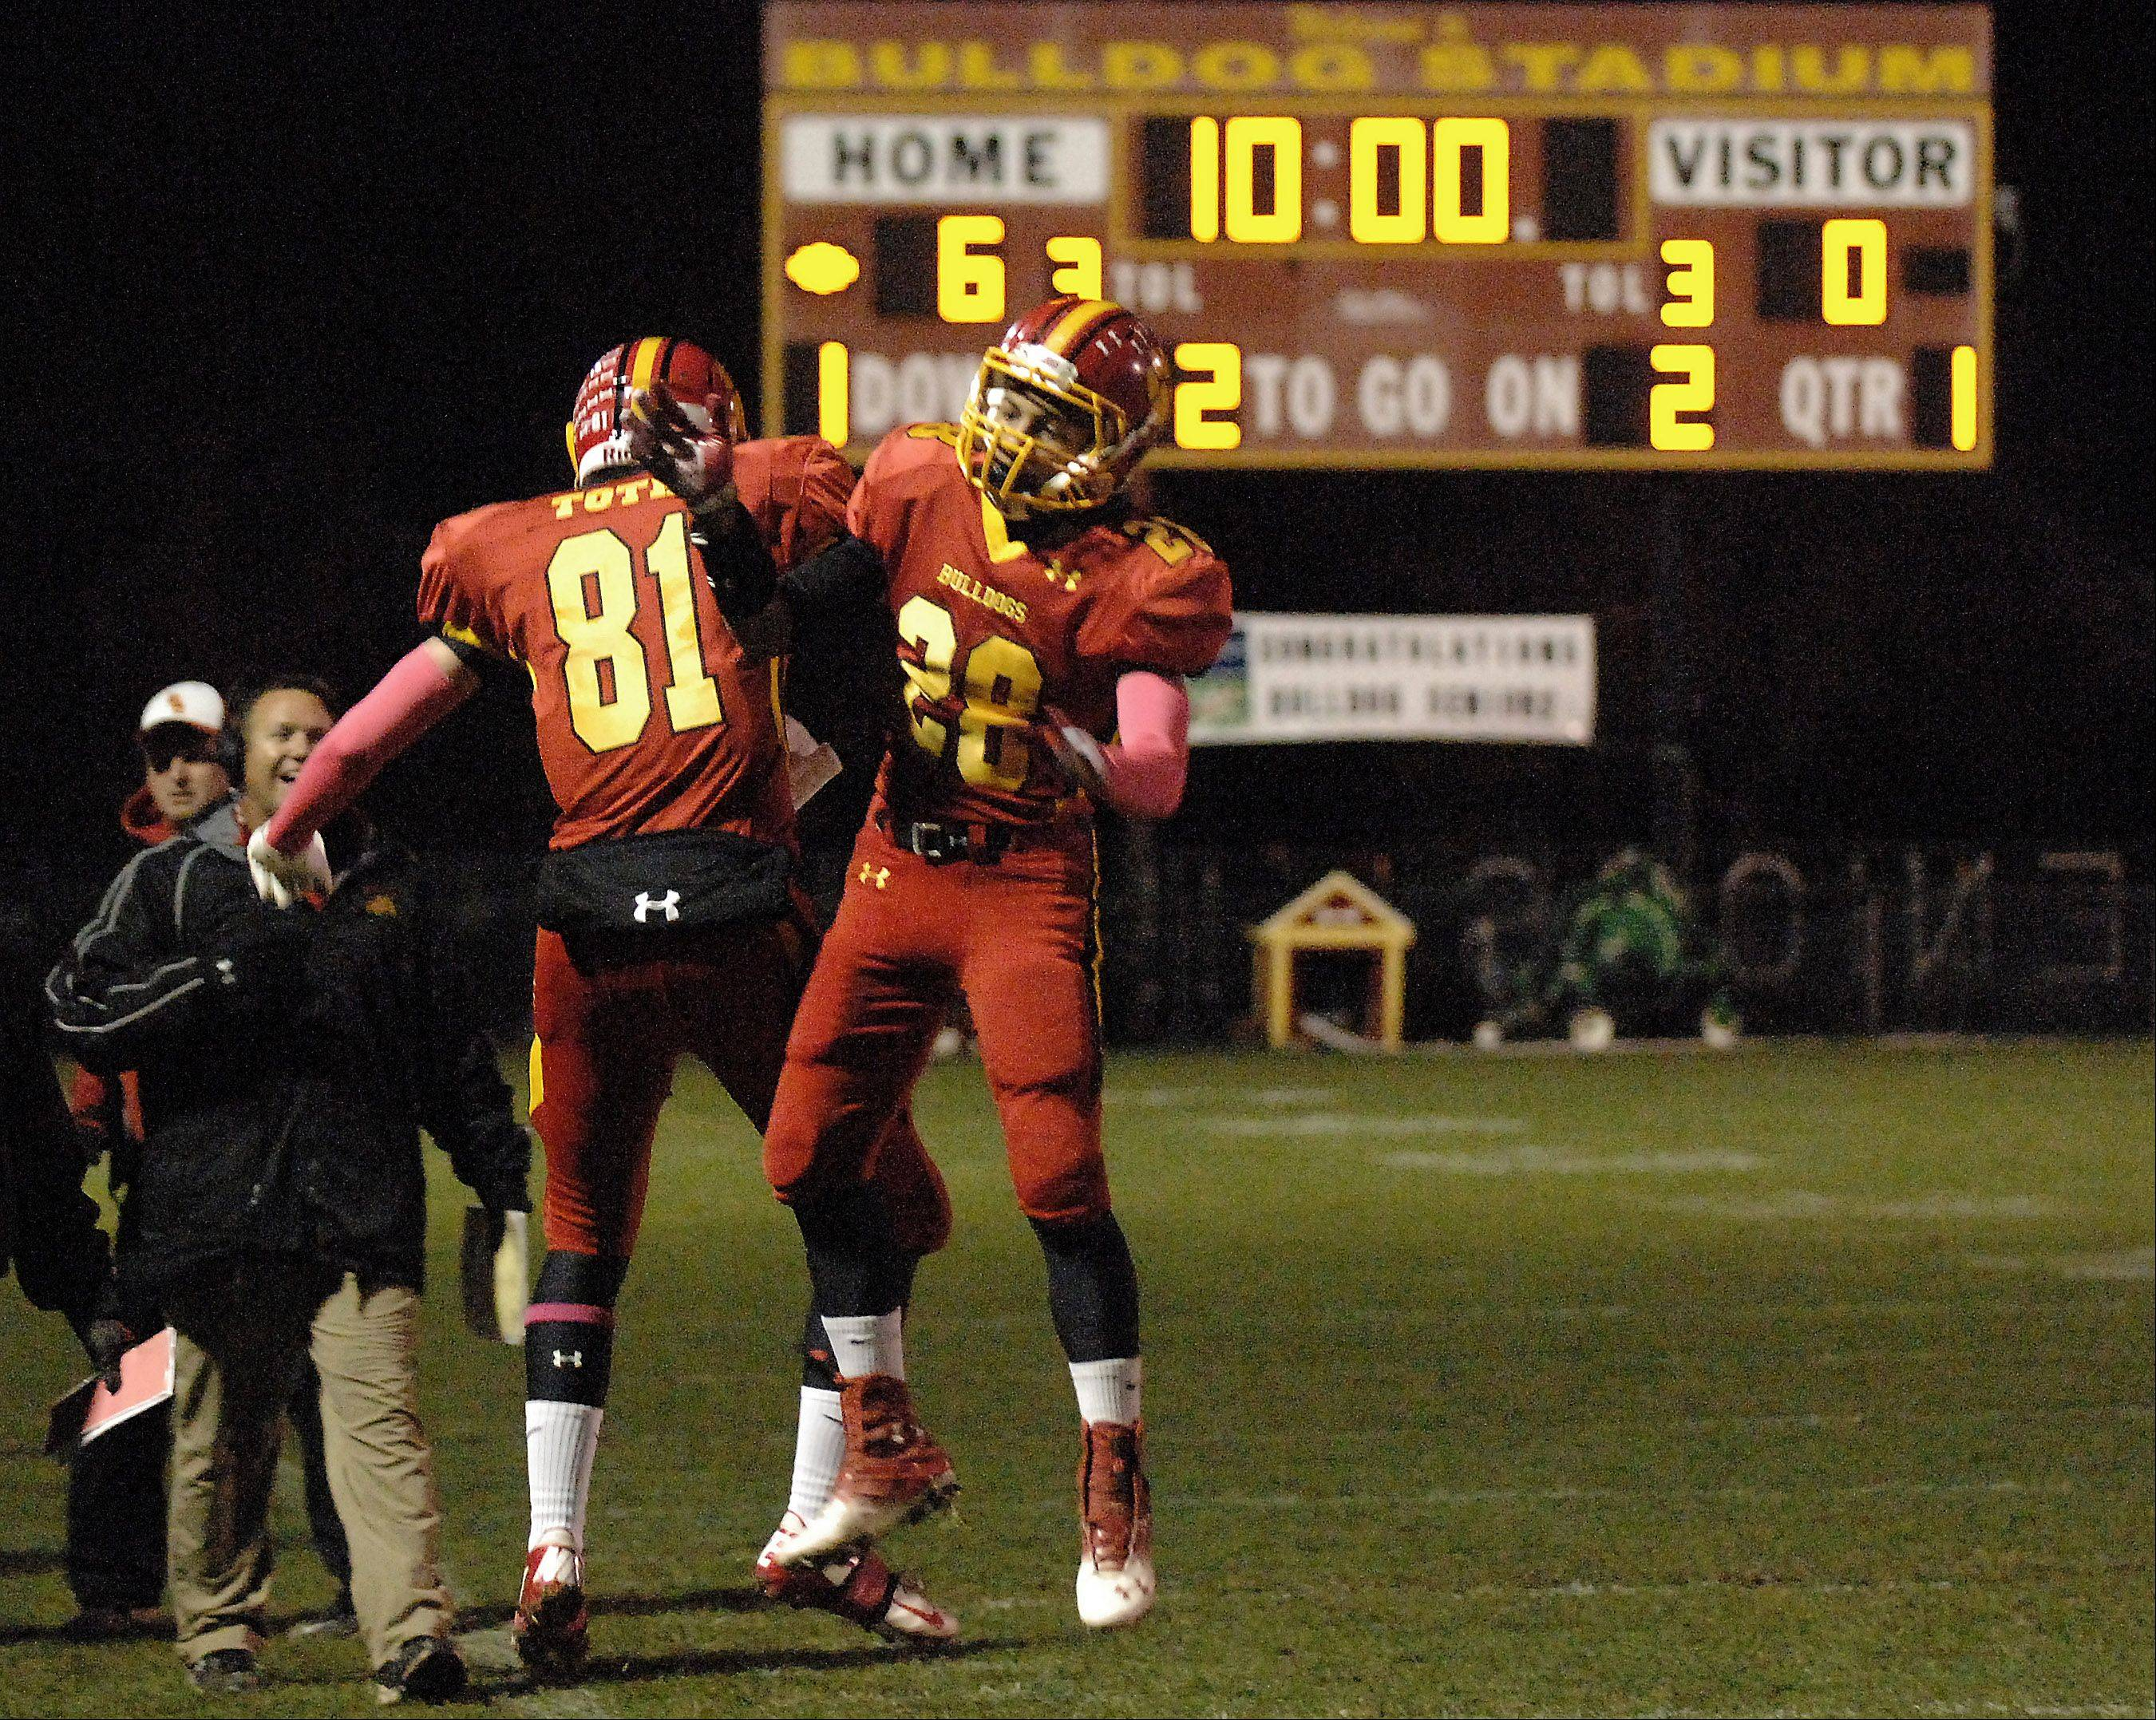 Batavia's Anthony Scaccia is congratulated by teammate Jason Toth after a touchdown run.